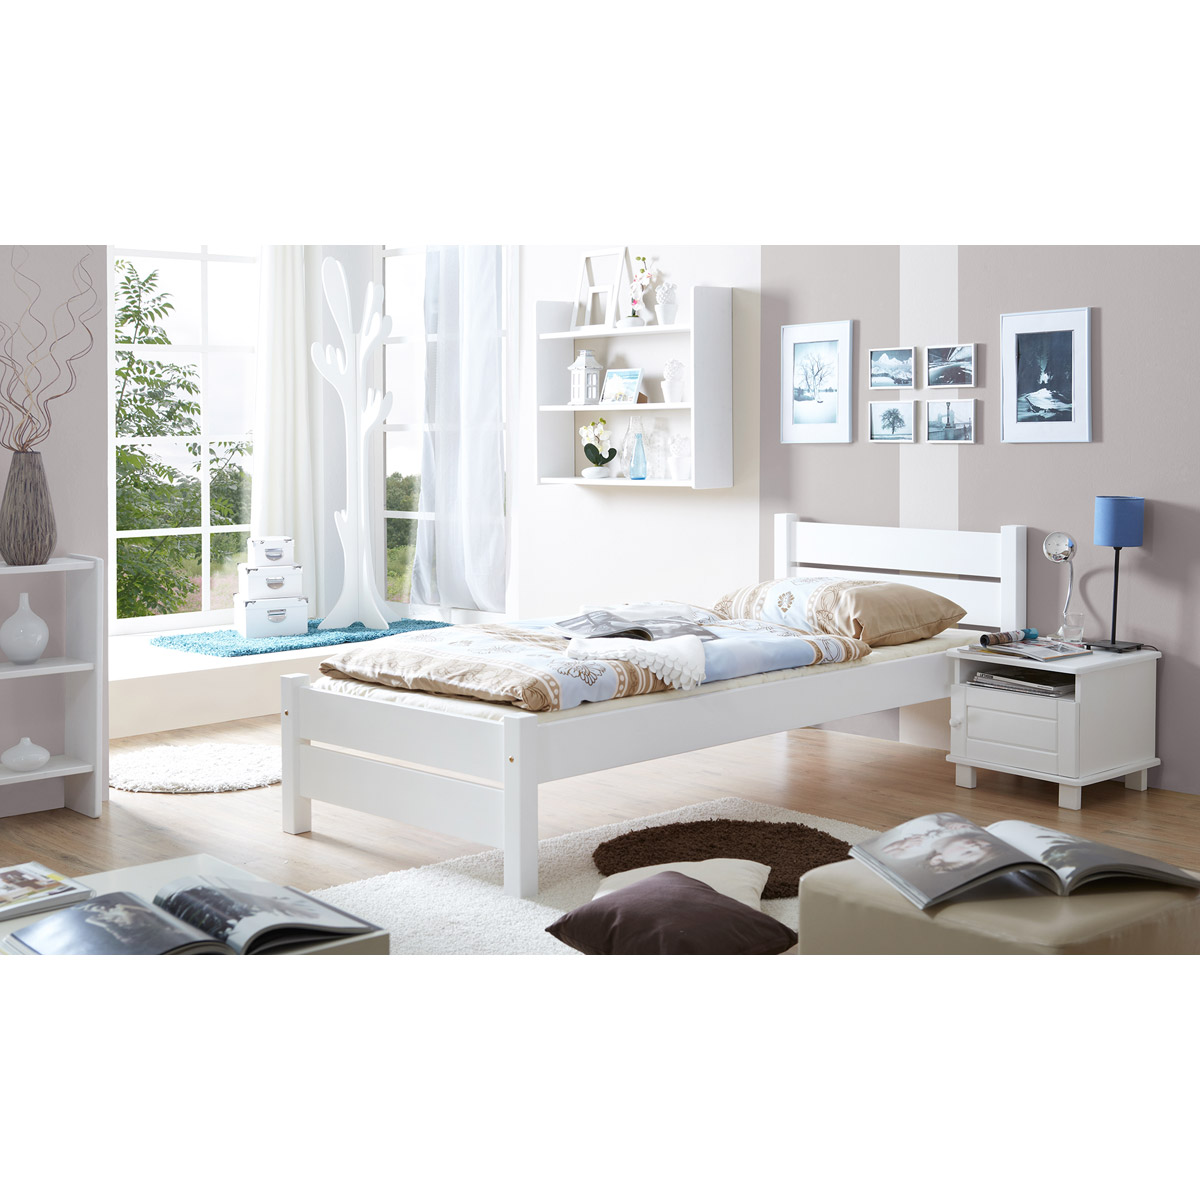 ticaa bora einzelbett kiefer wei 90x200 cm. Black Bedroom Furniture Sets. Home Design Ideas